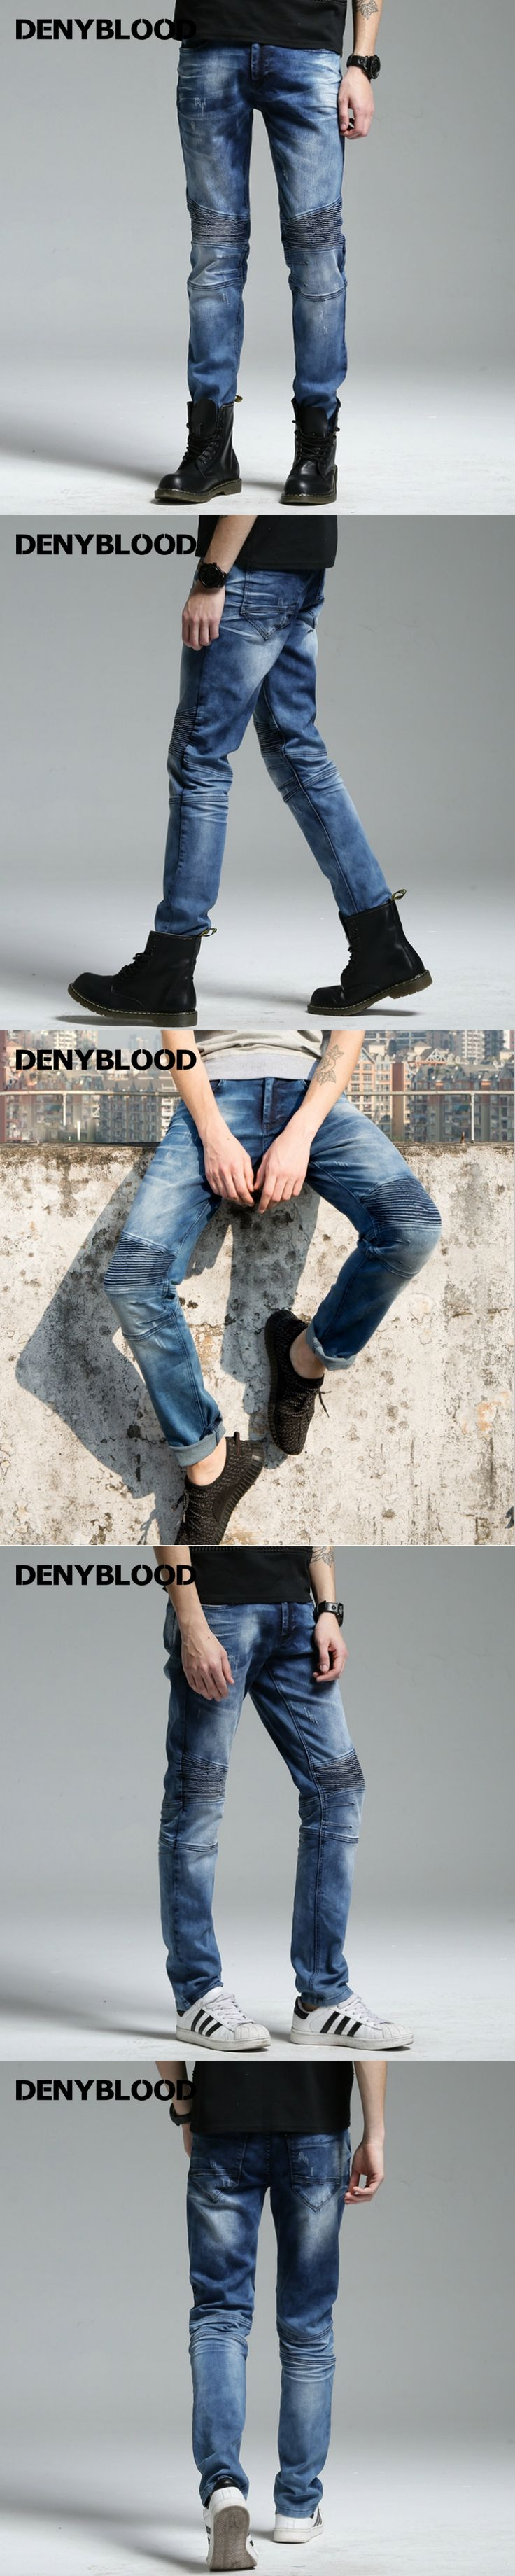 Denyblood Jeans 2017 Spring Summer Men Cargo Jeans Darked Wash Stretch Denim Pants Slim Straight Pleated Cutting Trousers 172050